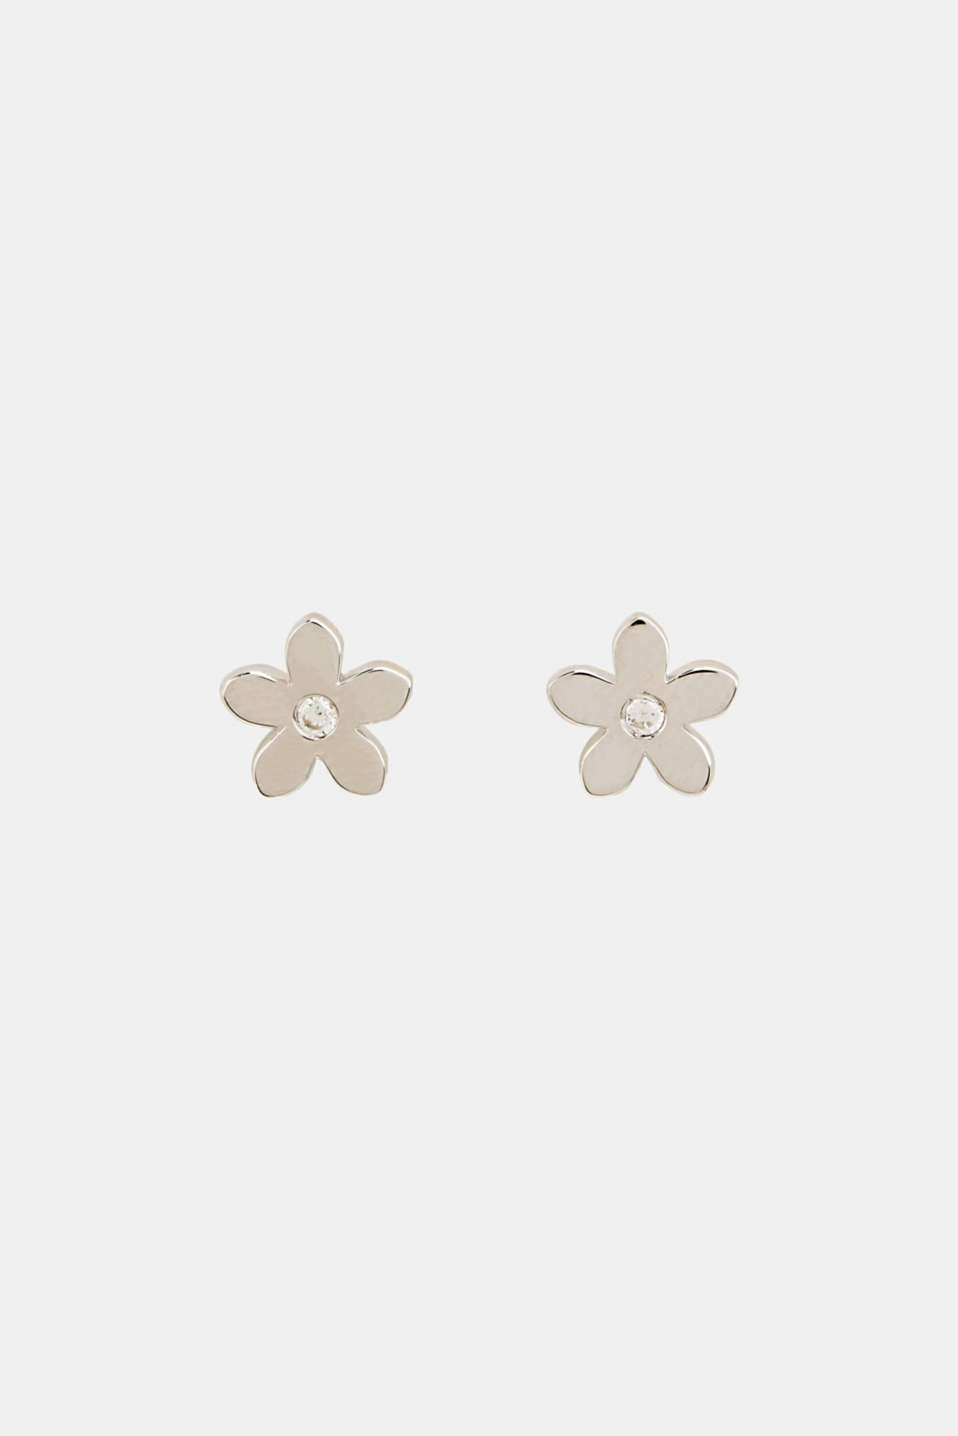 Stud earrings with zirconia, sterling silver, LCSILVER, detail image number 0